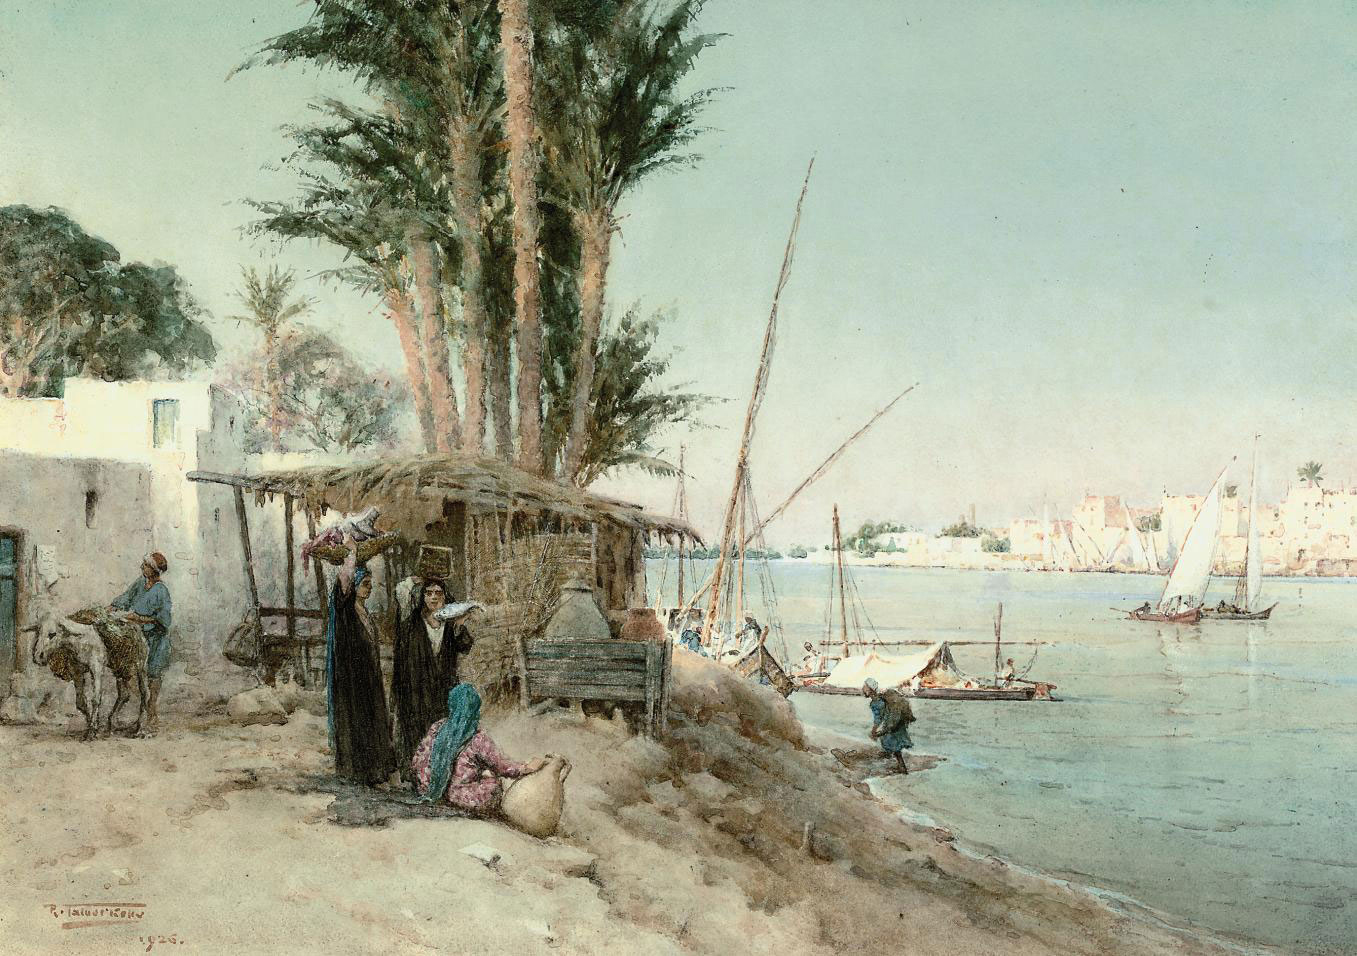 Traders on the banks of the Nile